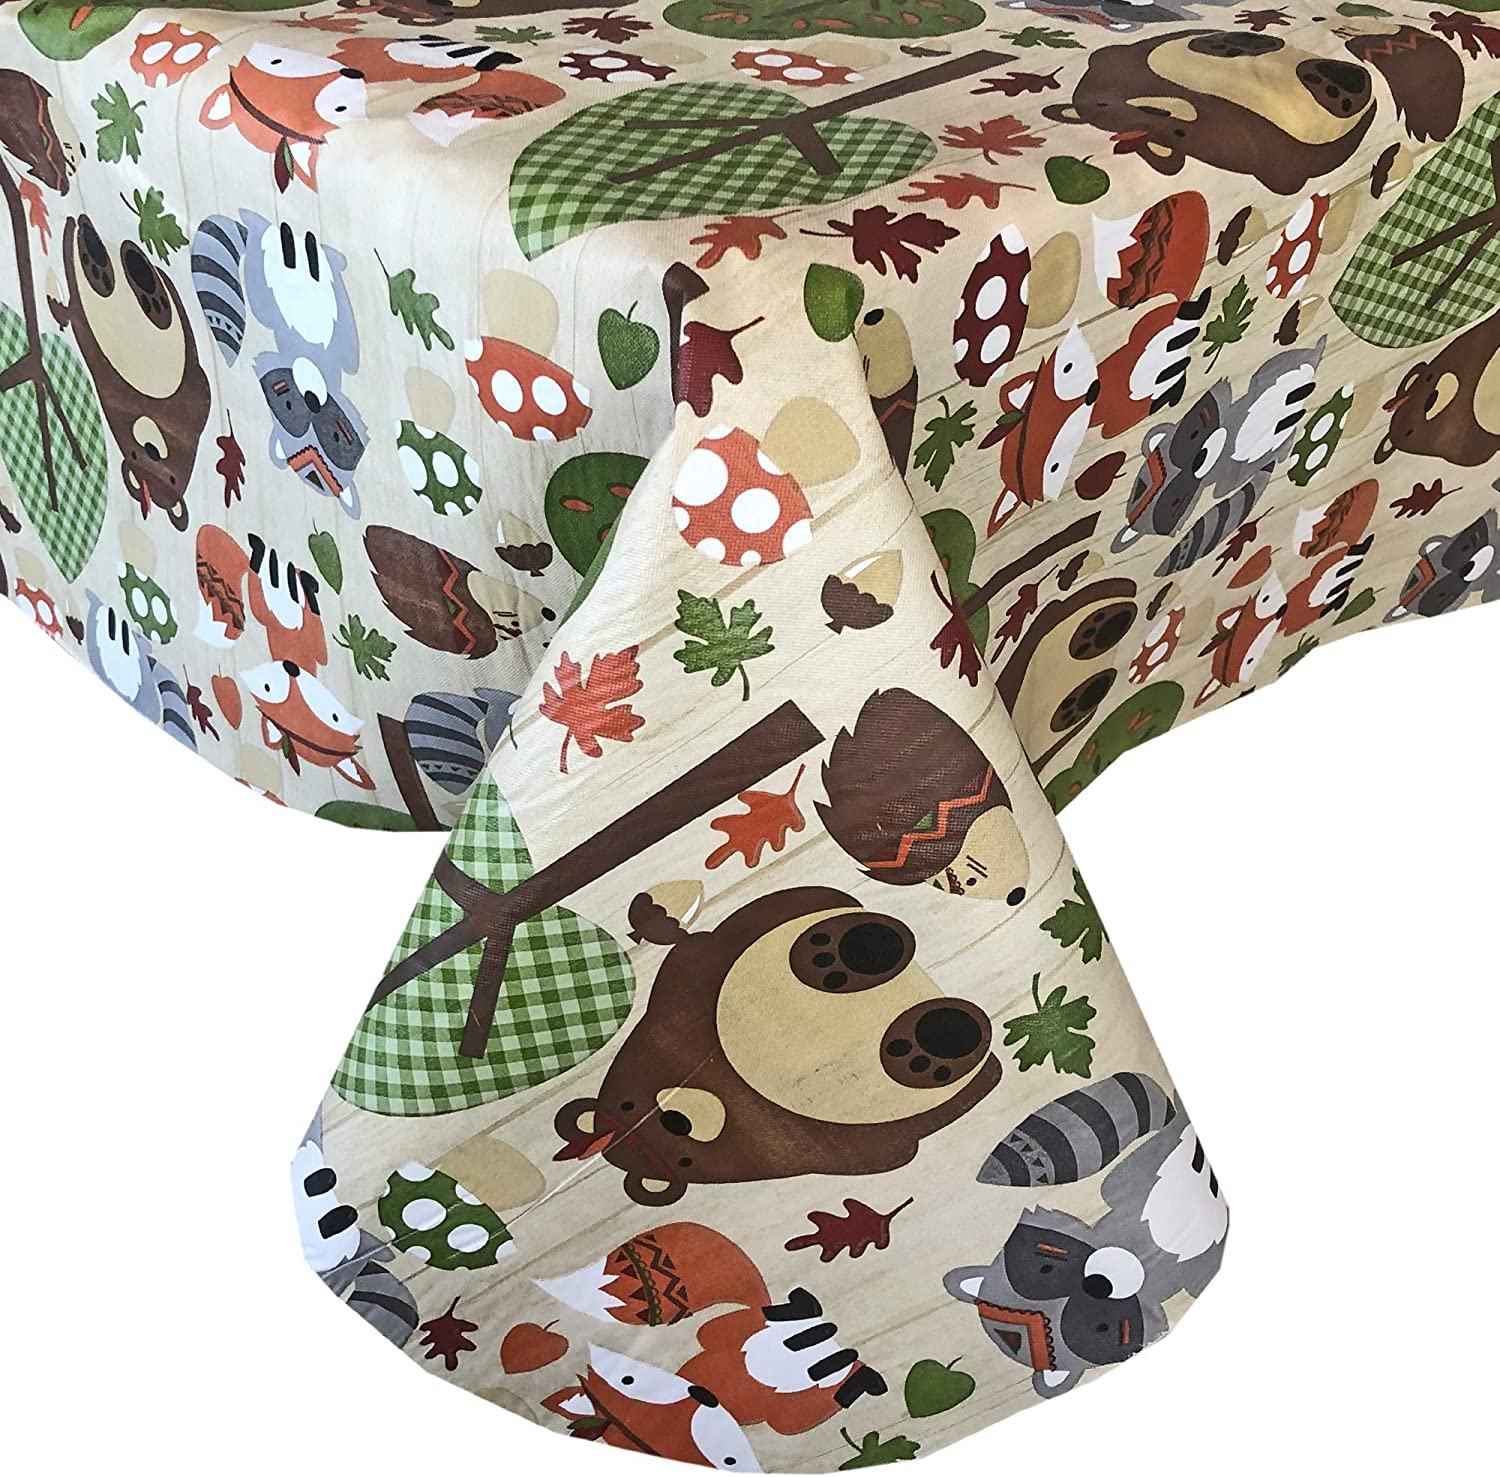 "Newbridge Woodsy Animal Friends Fall and Thanksgiving Vinyl Flannel Backed Tablecloth - Whimsical Forest Creatures Kitchen and Dining Room Print Easy Care Print Tablecloth, 60"" x 84"" Oblong/Rectangle"